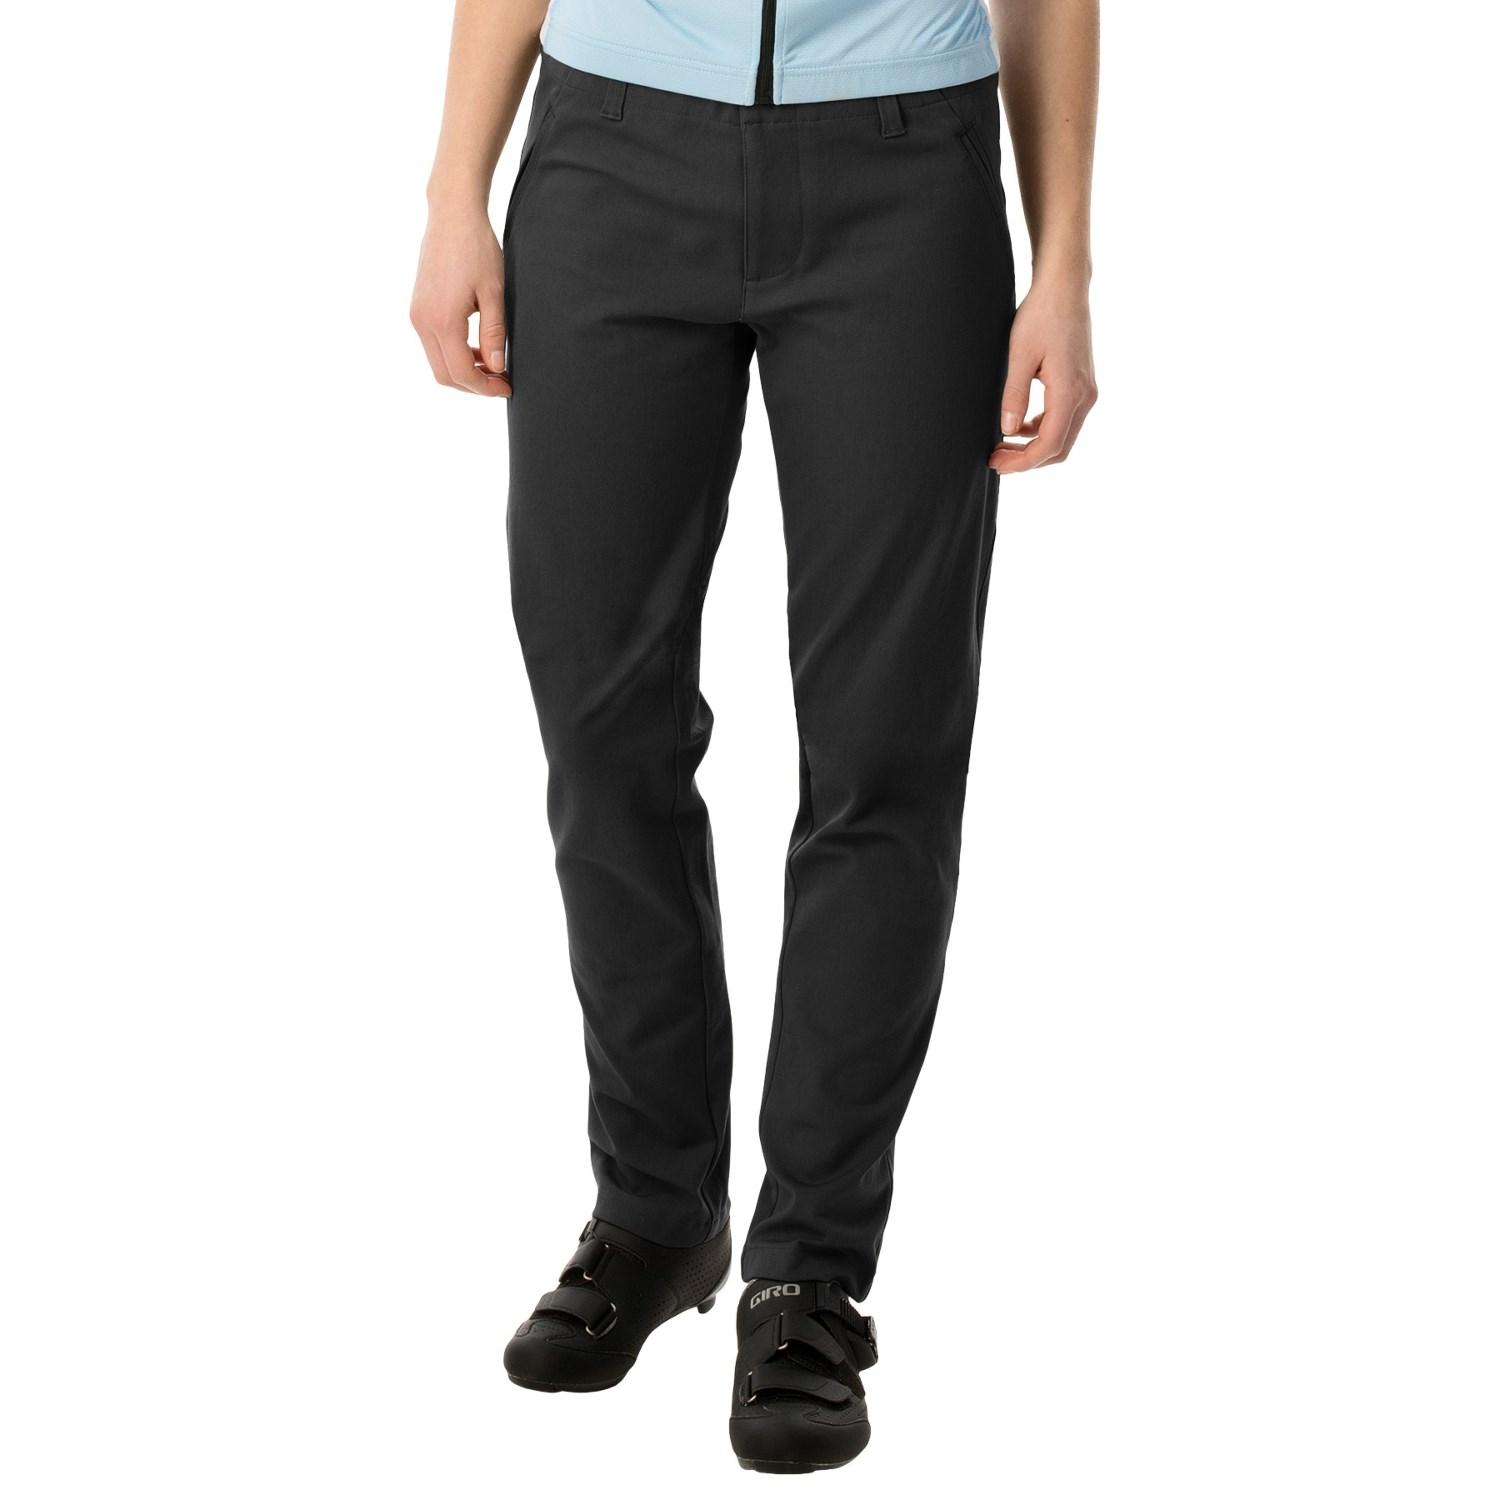 Innovative Tailored Pants Women  Pants Women On Jil Sander Online Store